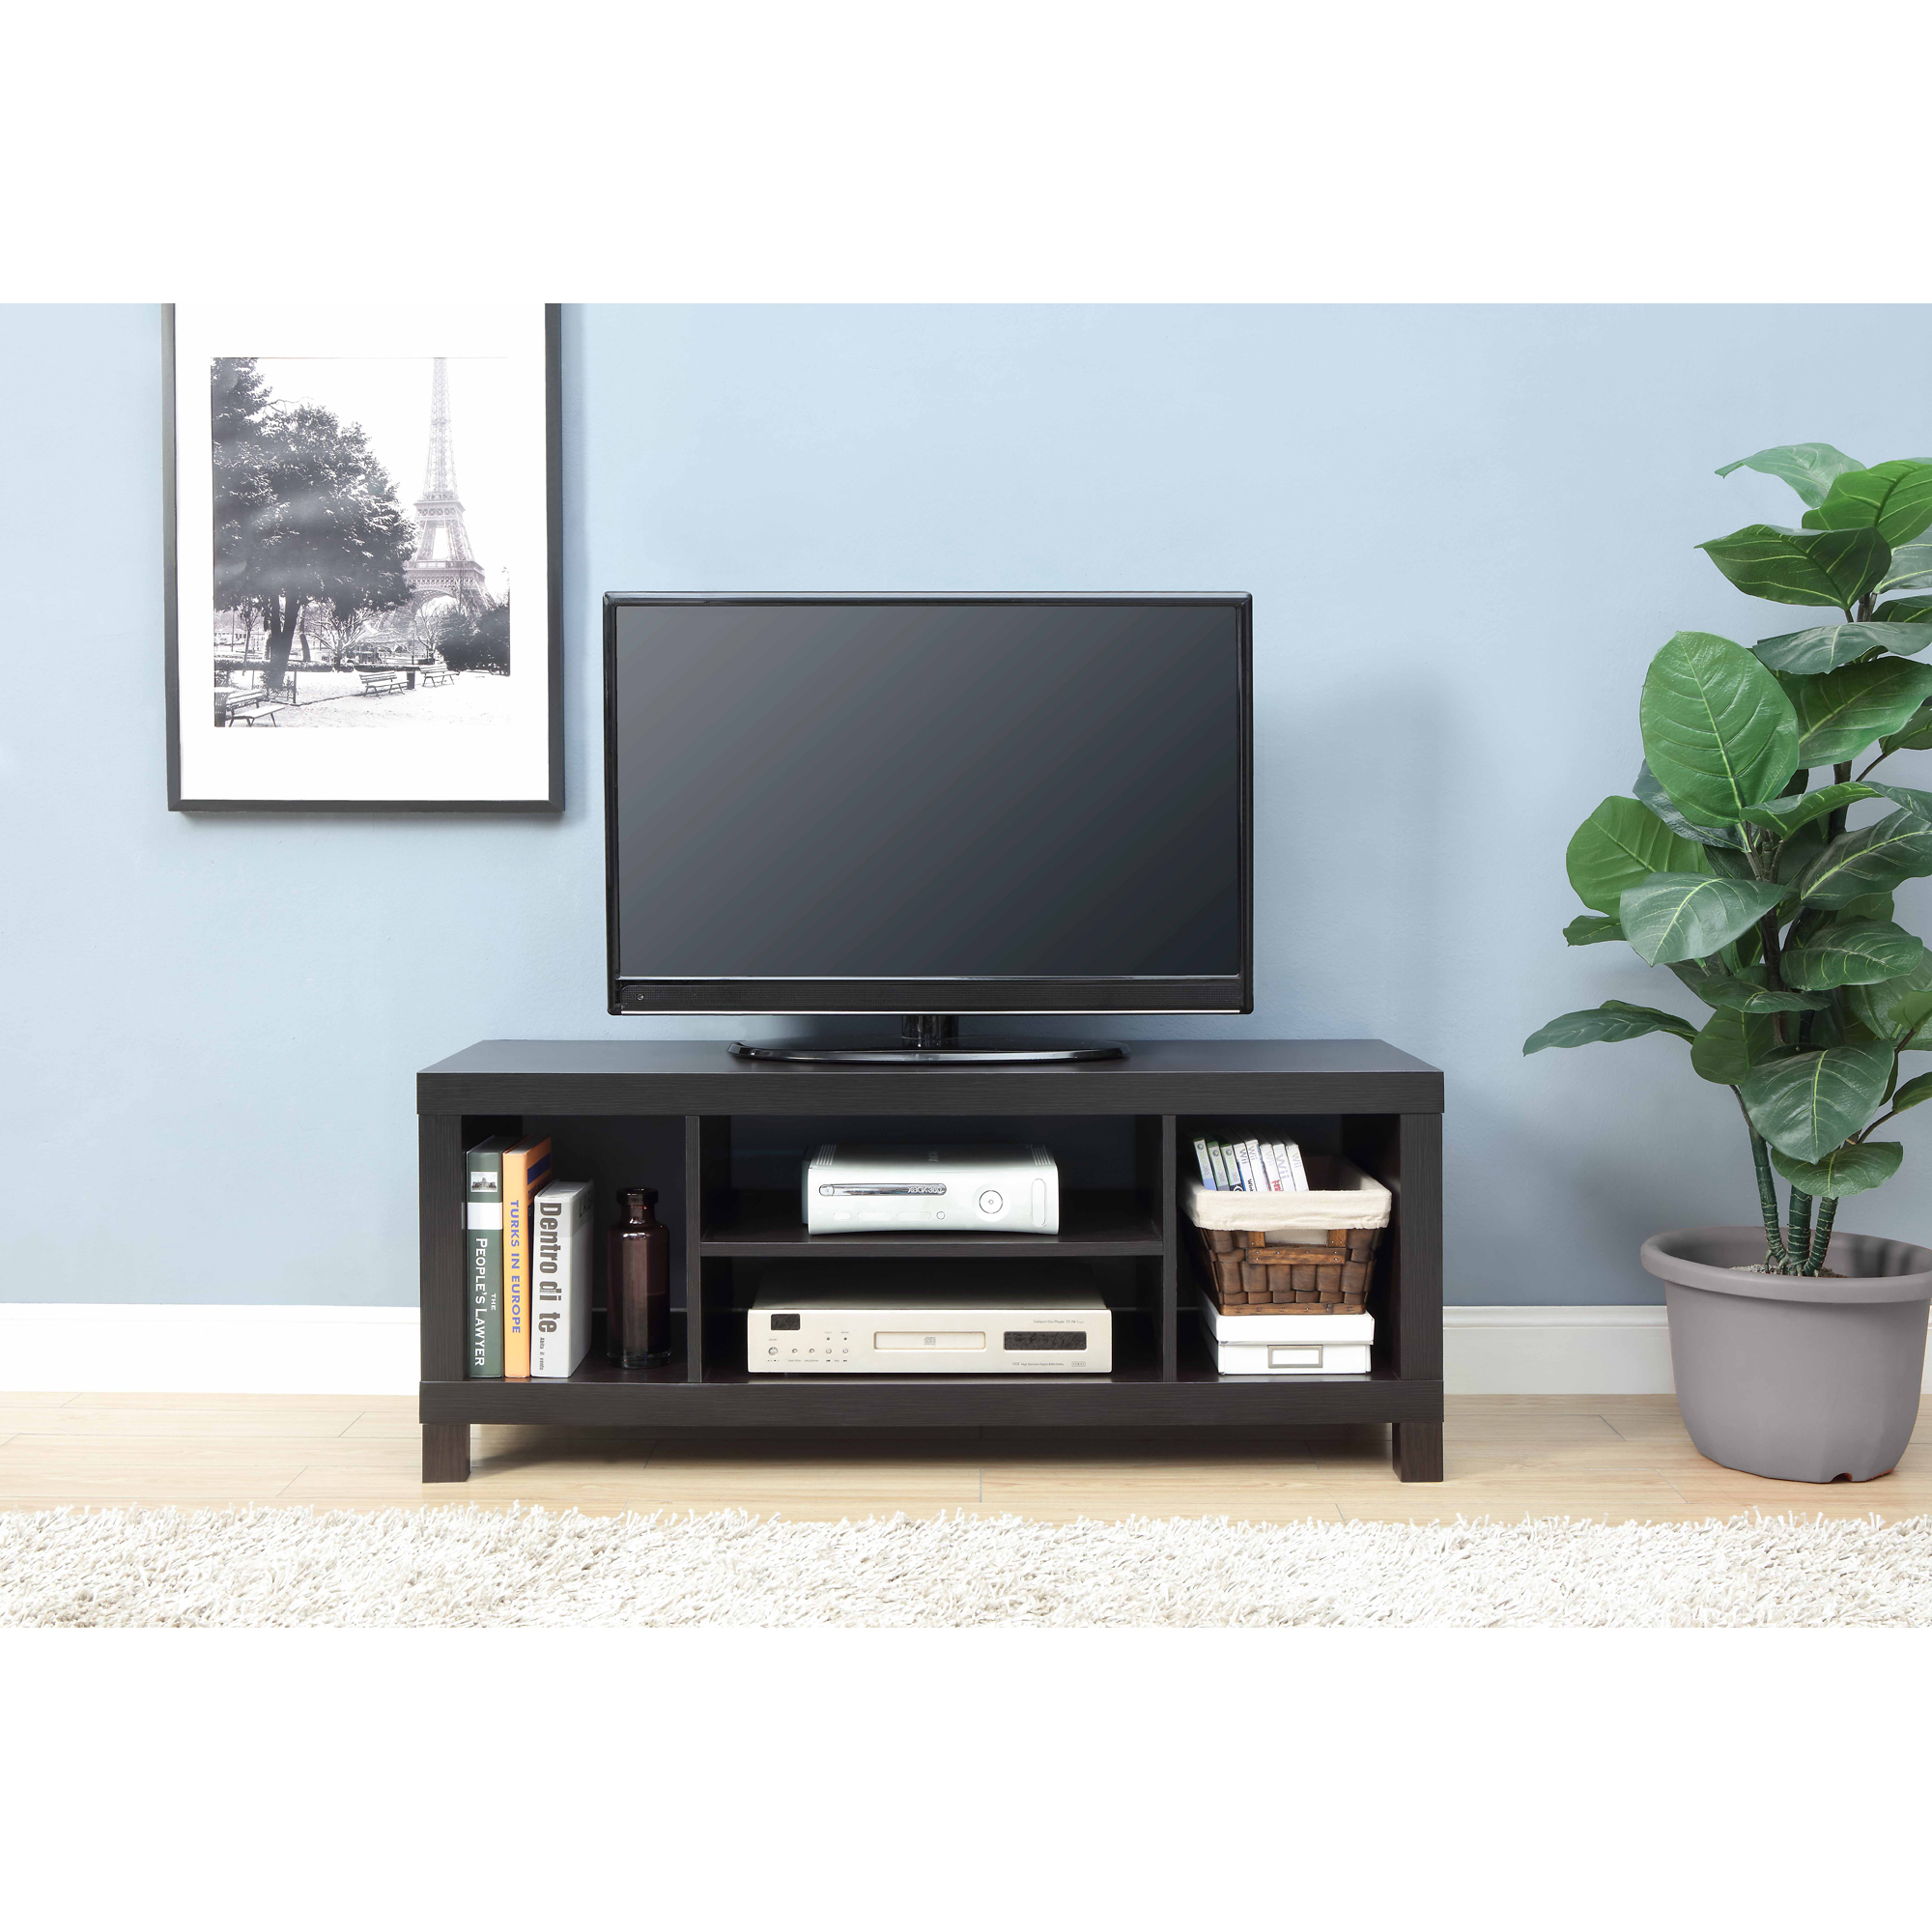 "Mainstays TV Stand for TVs up to 42"", Multiple Colors"